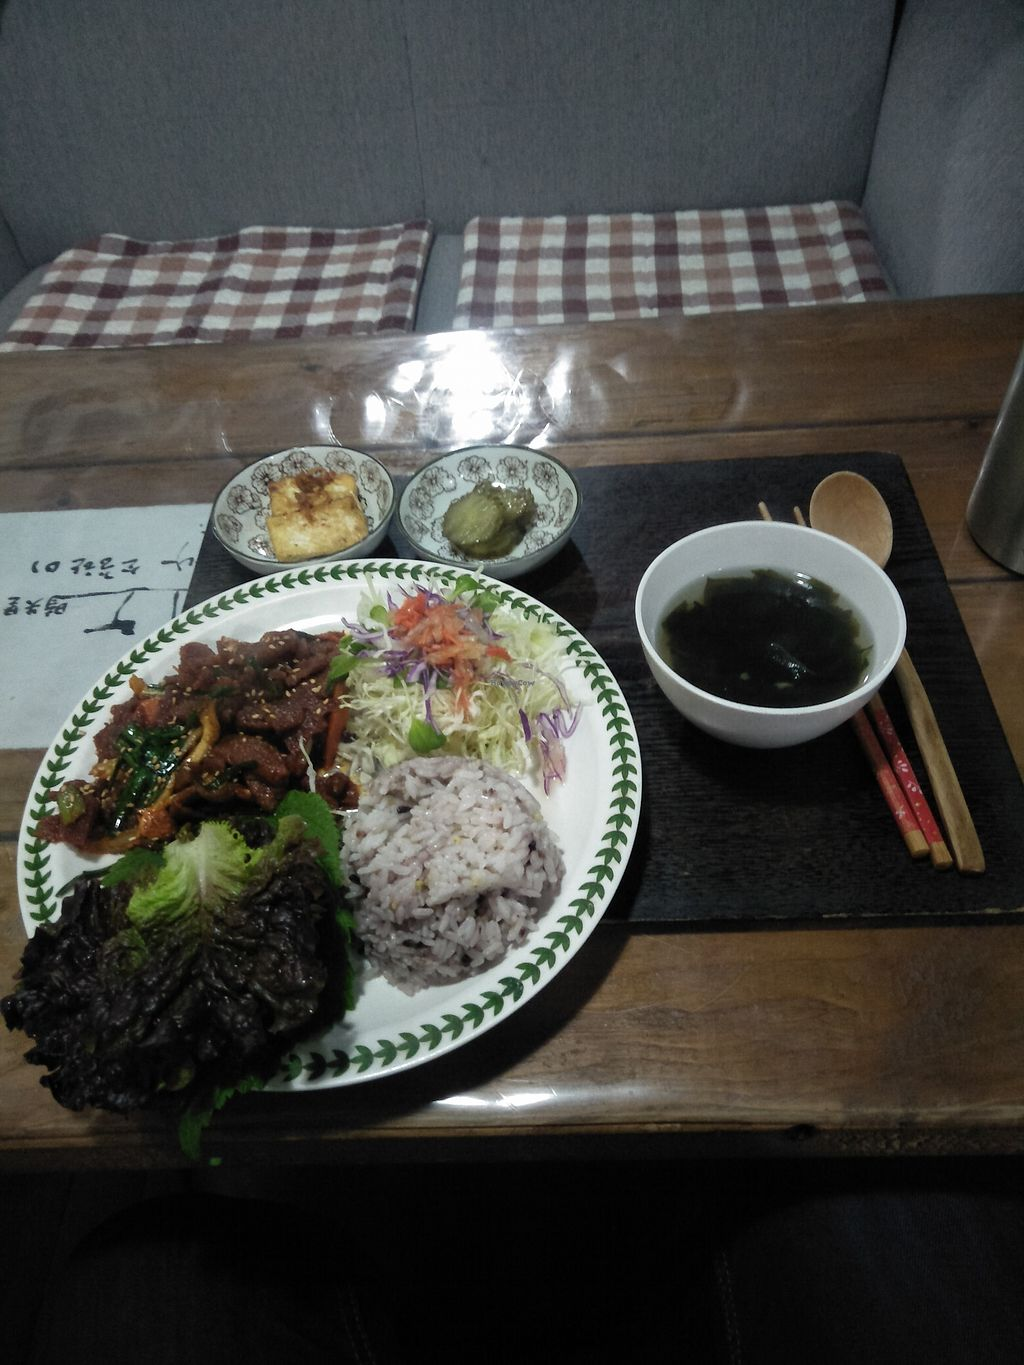 "Photo of Dajeon Cafe  by <a href=""/members/profile/CurtMcArdle"">CurtMcArdle</a> <br/>Bulgogi <br/> February 3, 2018  - <a href='/contact/abuse/image/51276/354319'>Report</a>"